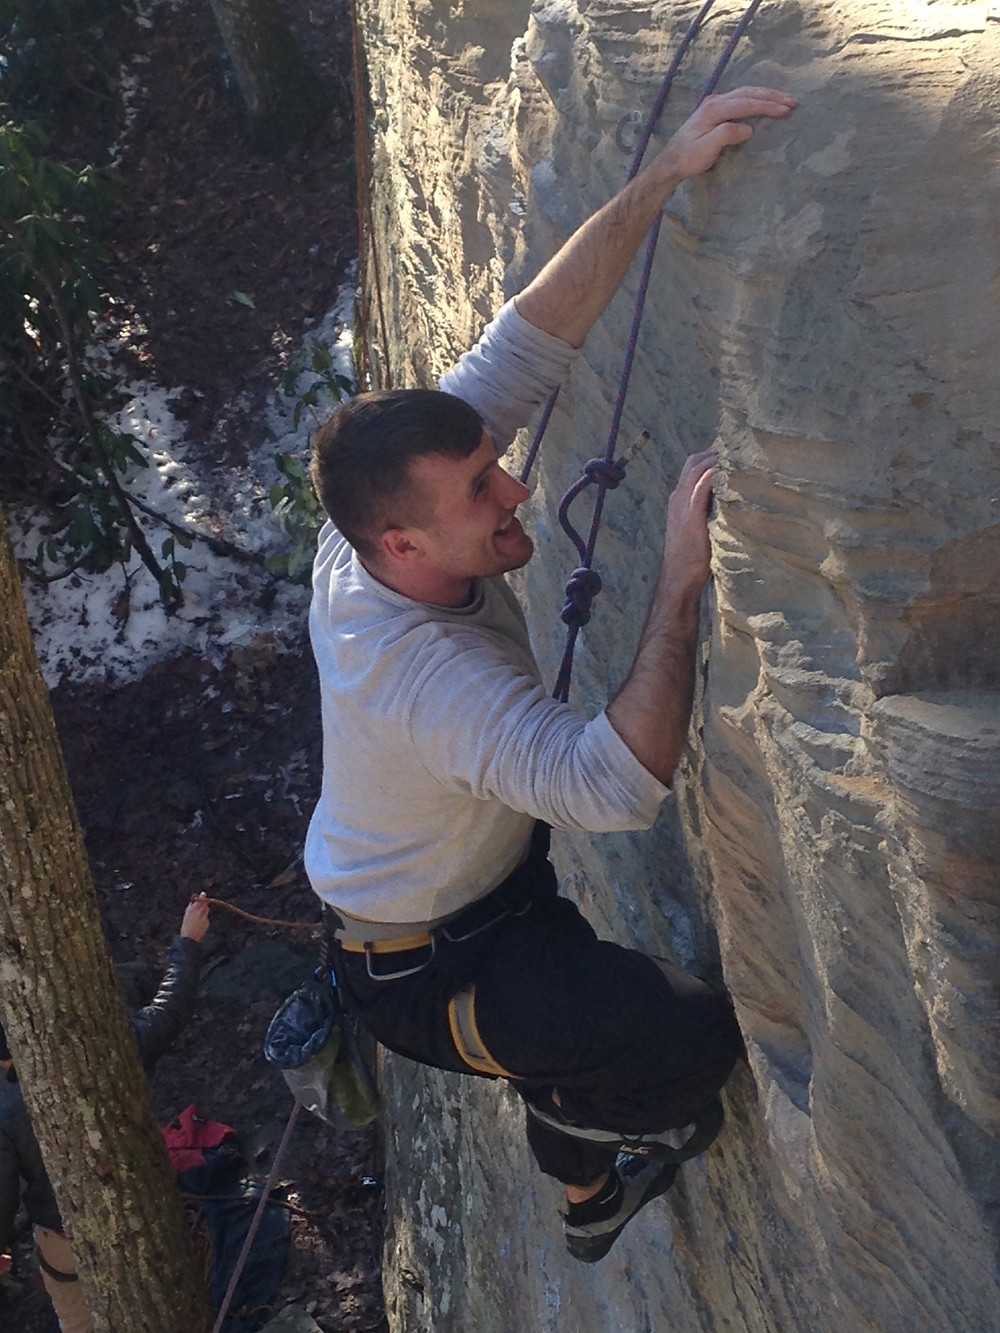 How to become an AMGA Certified Rock Guide